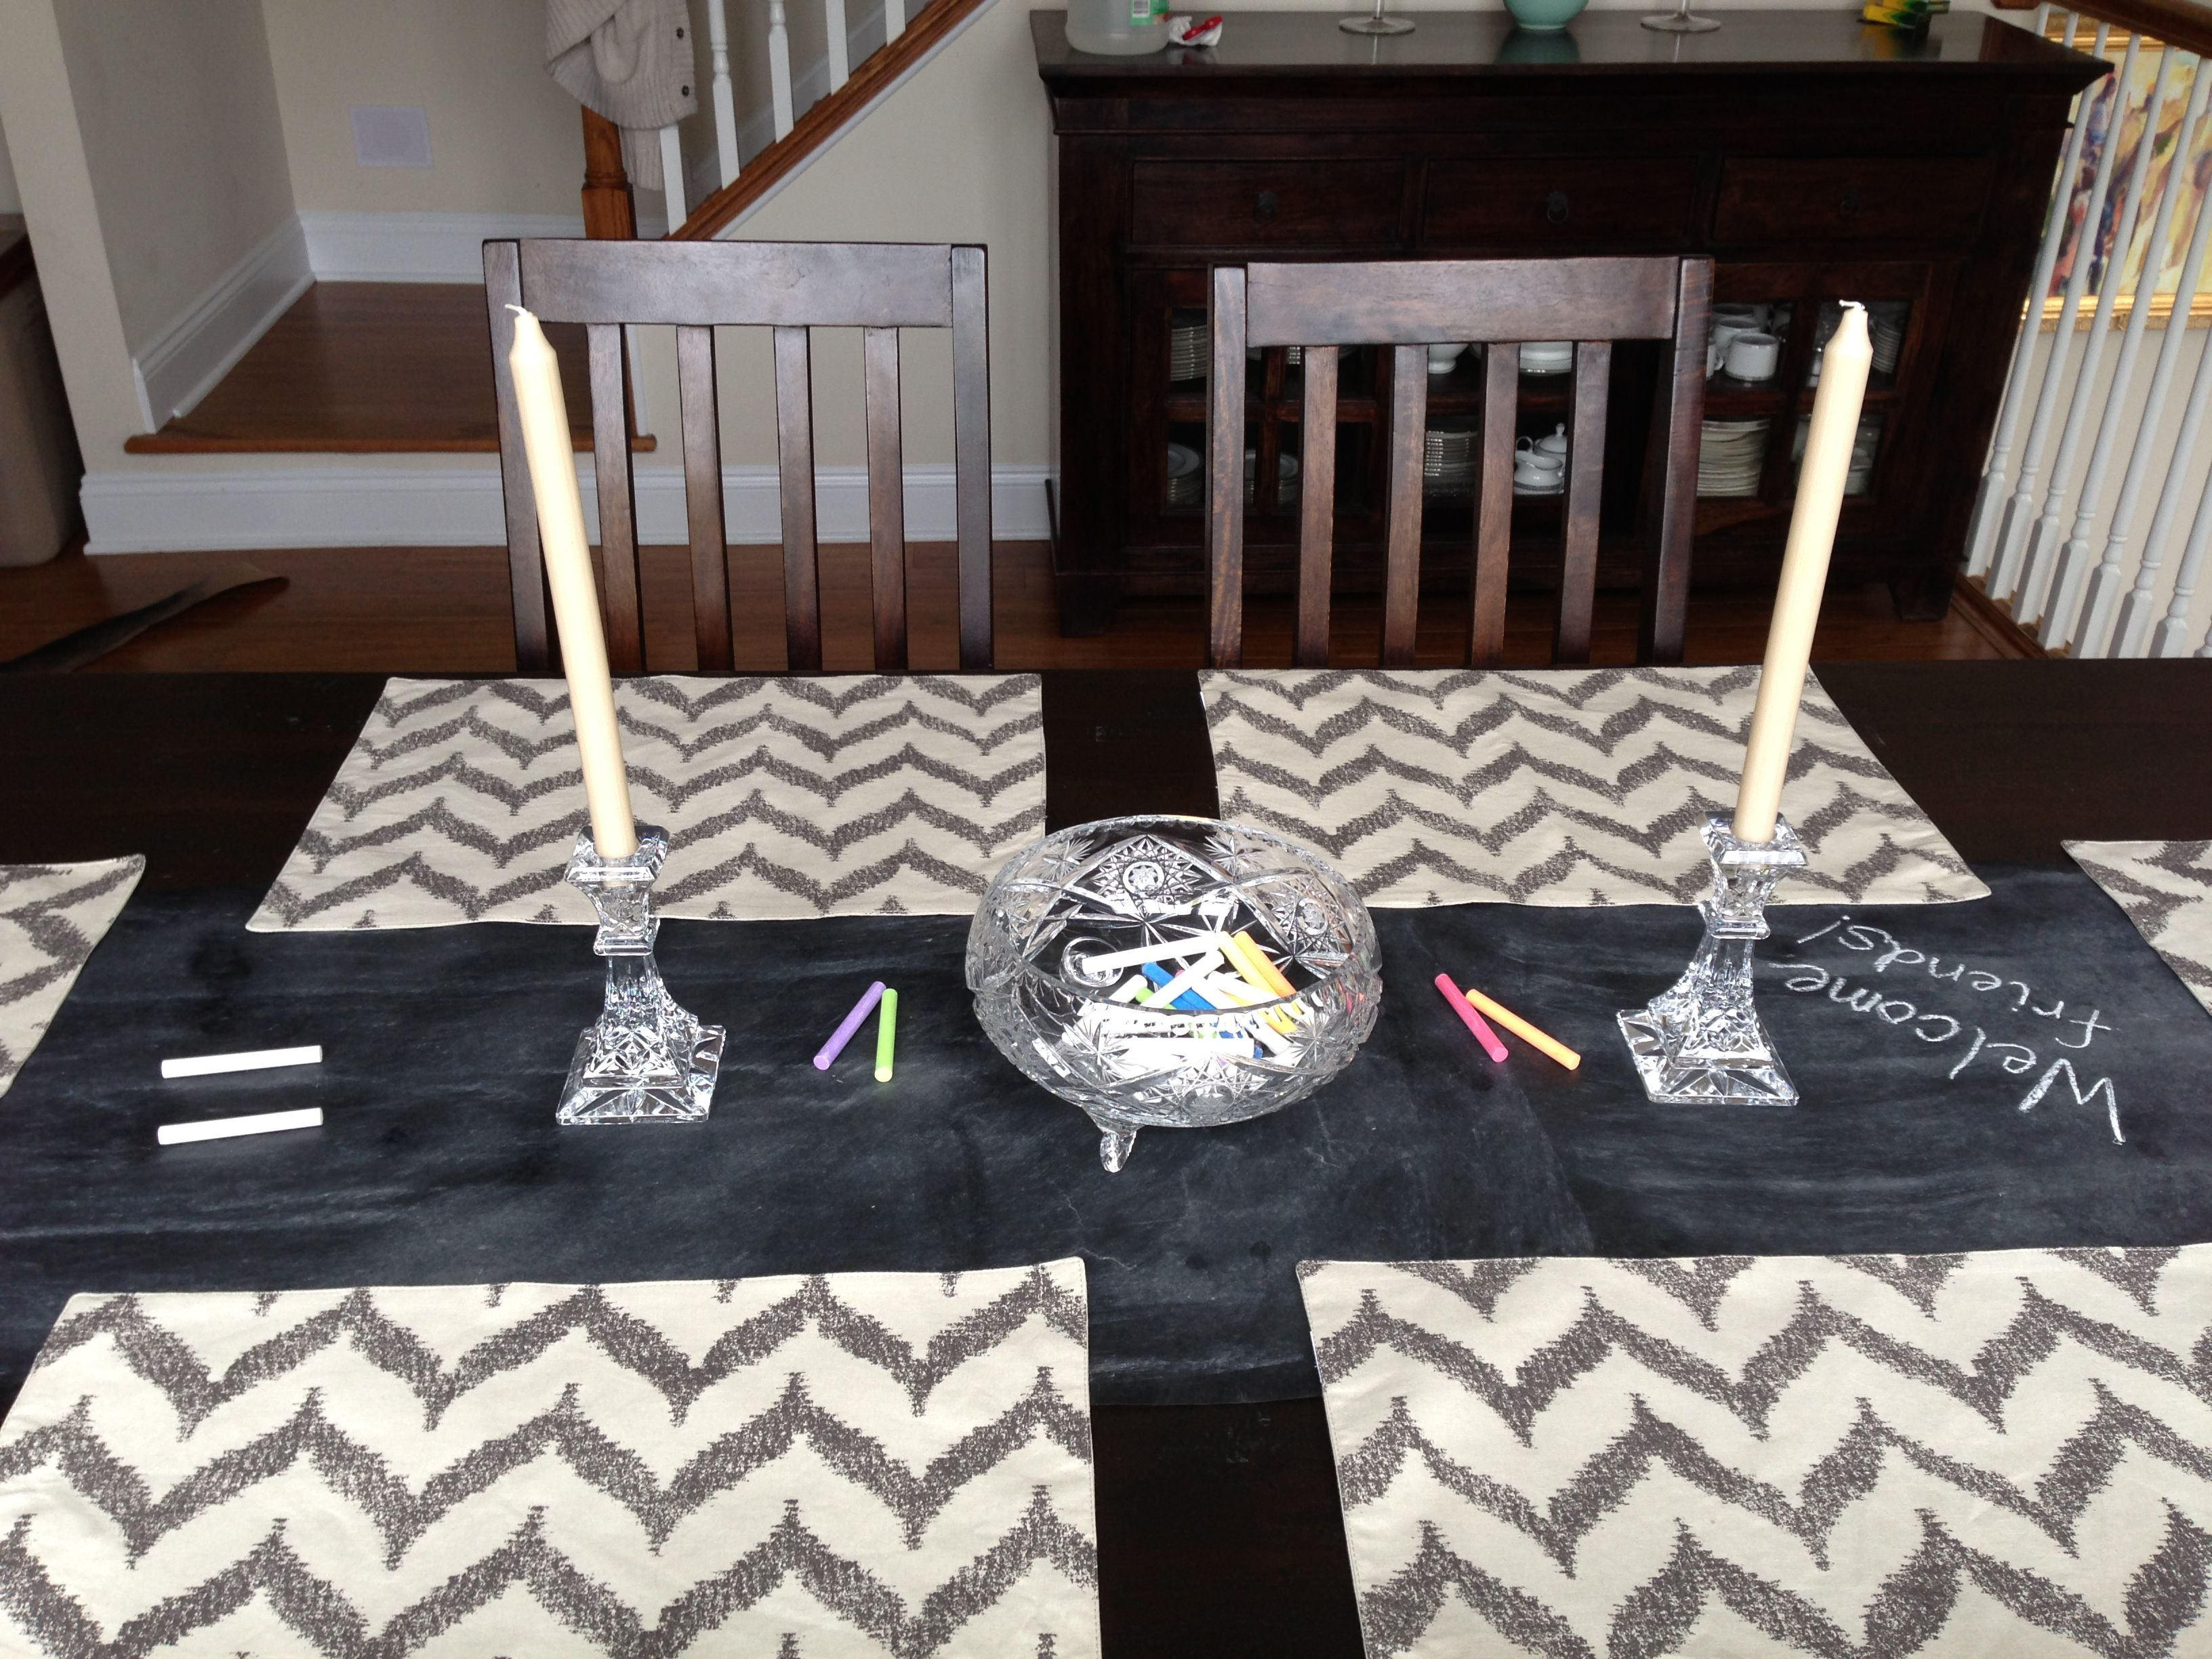 Chalkboard Table Runner Paint On Craft Paper Cut To Size Chevron Placemats